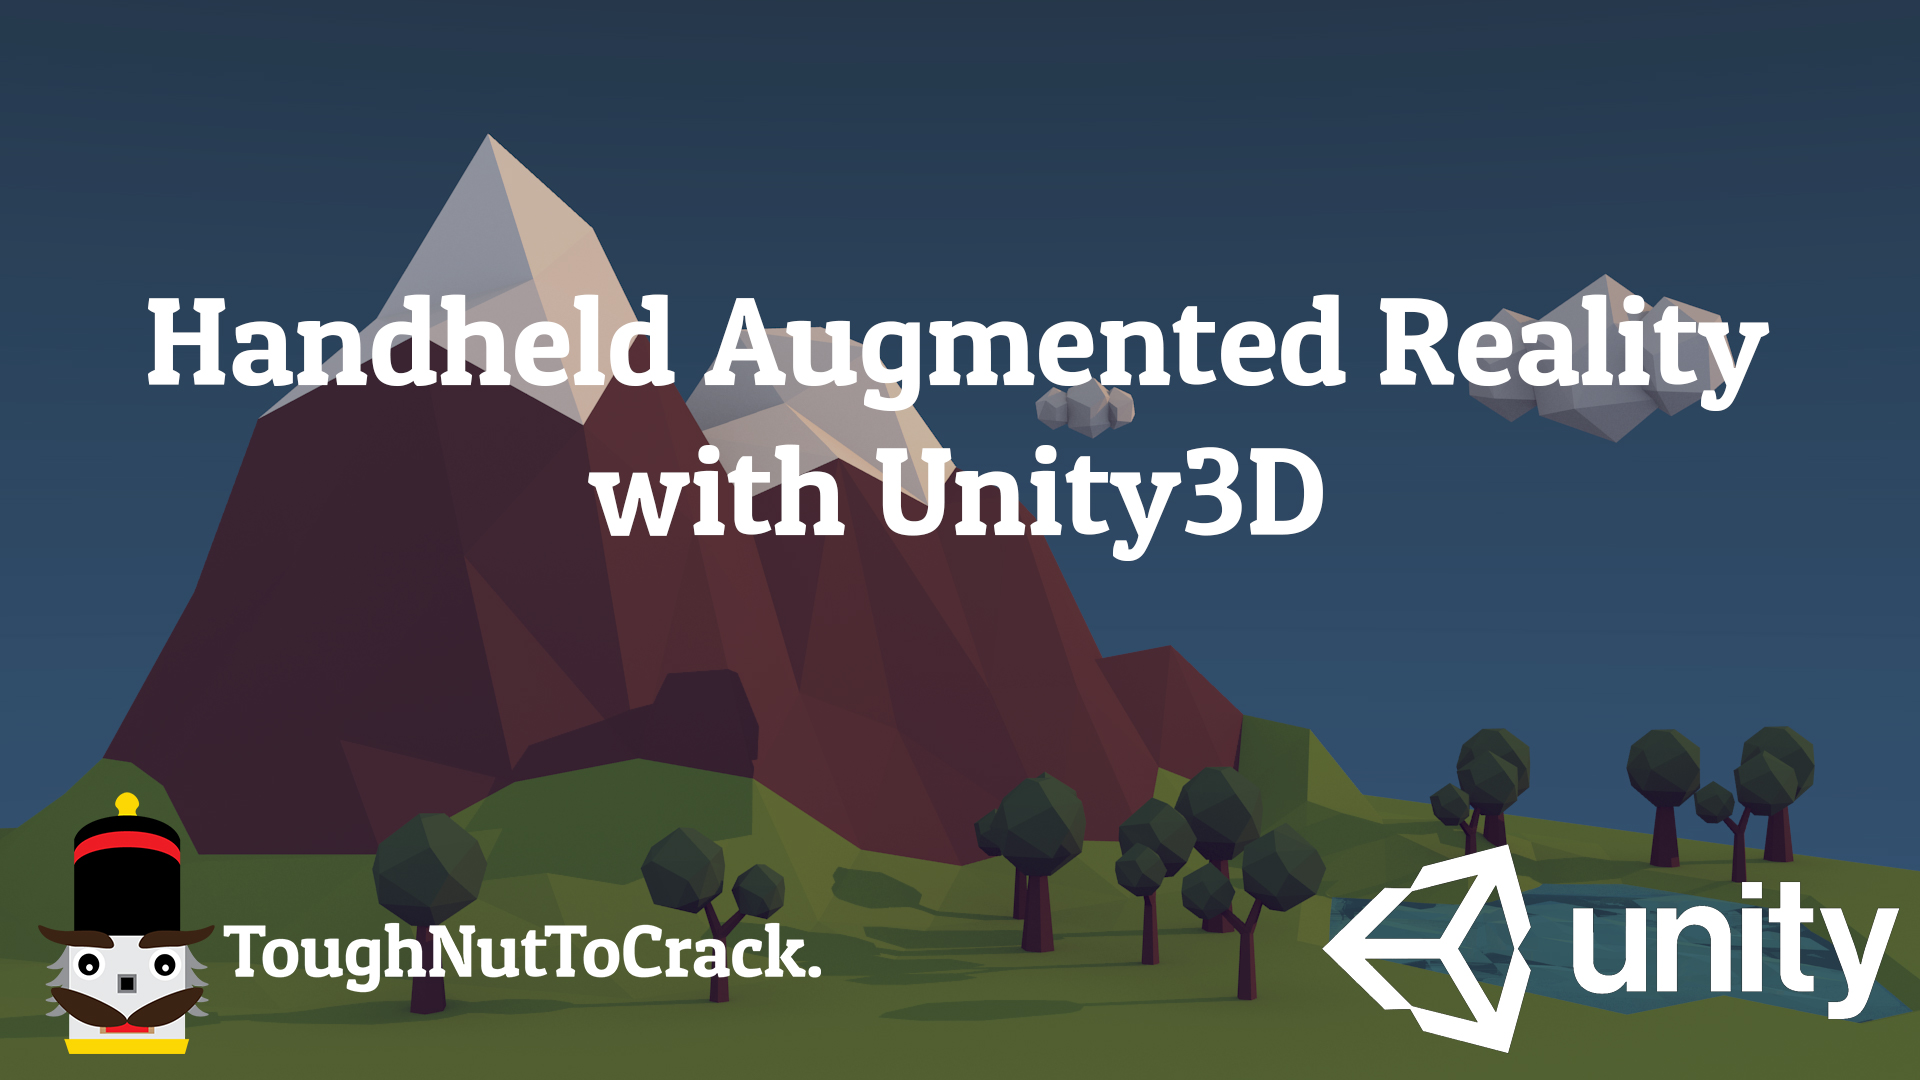 Handheld Augmented Reality with Unity 3D